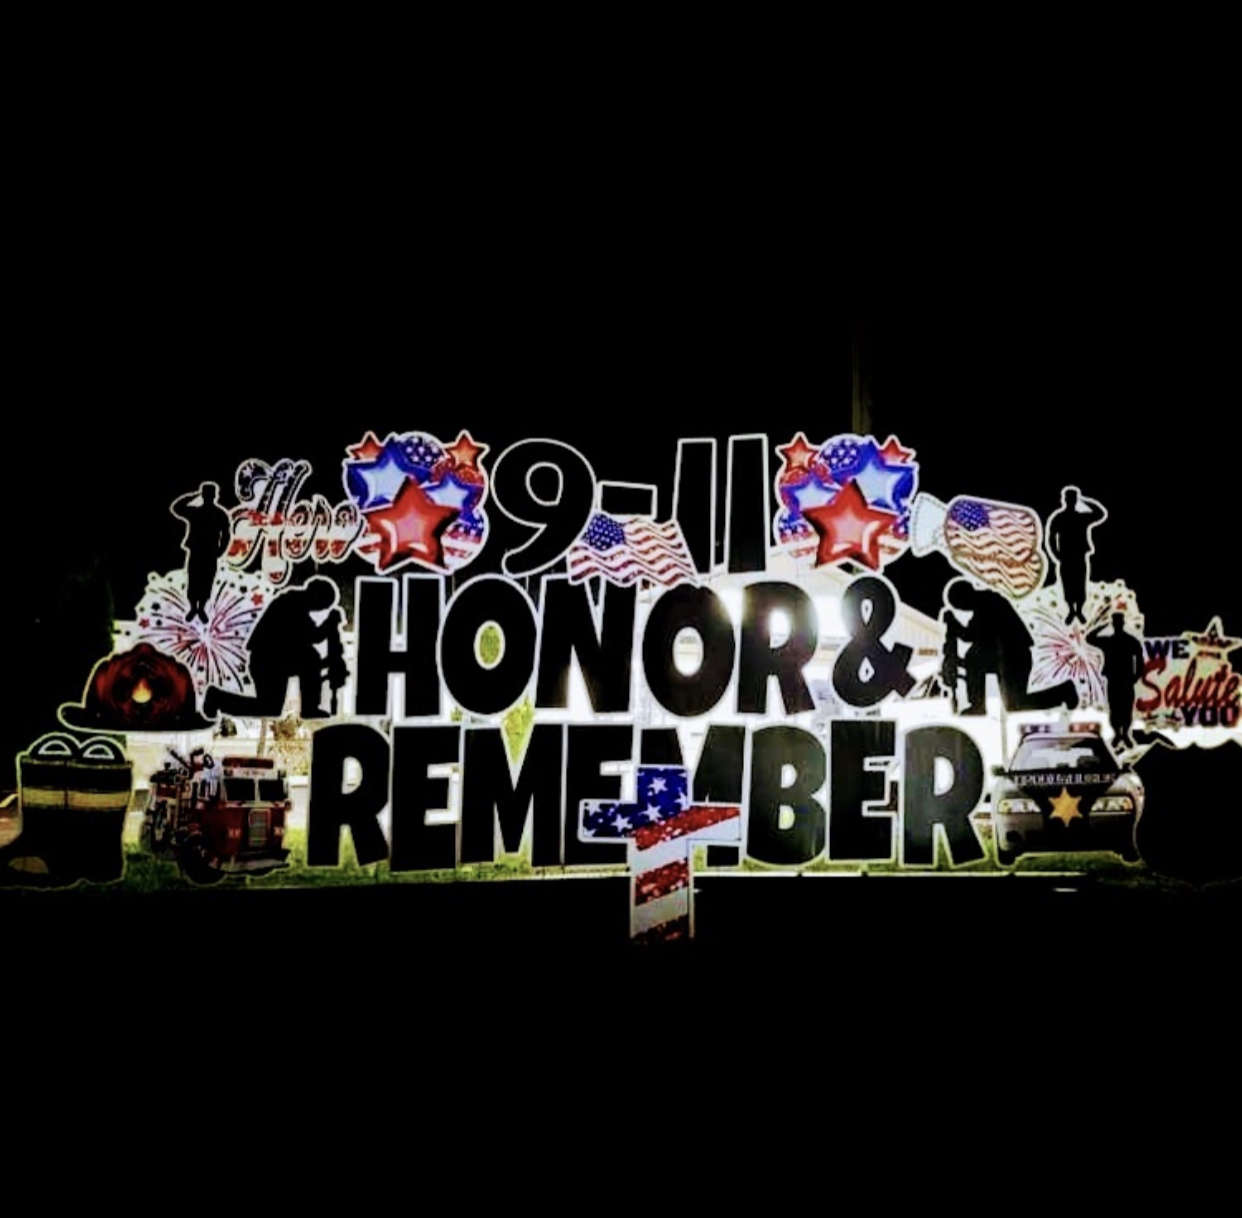 9/11 Honor & Remember Event